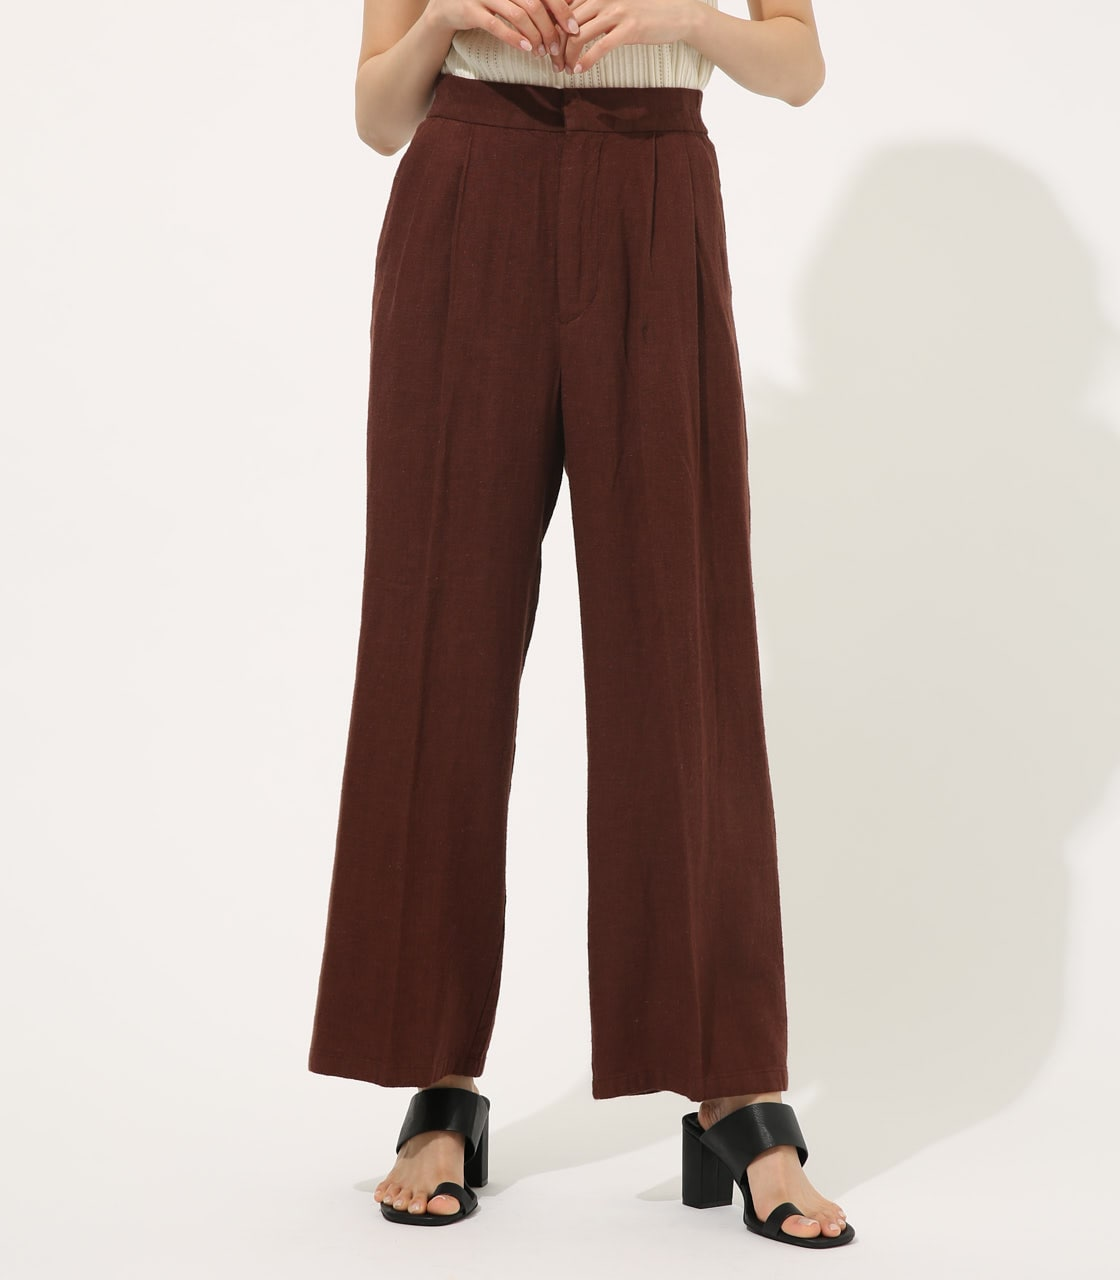 【AZUL BY MOUSSY】COTTON LINEN WIDE PANTS【MOOK50掲載 90131】 詳細画像 BRN 1